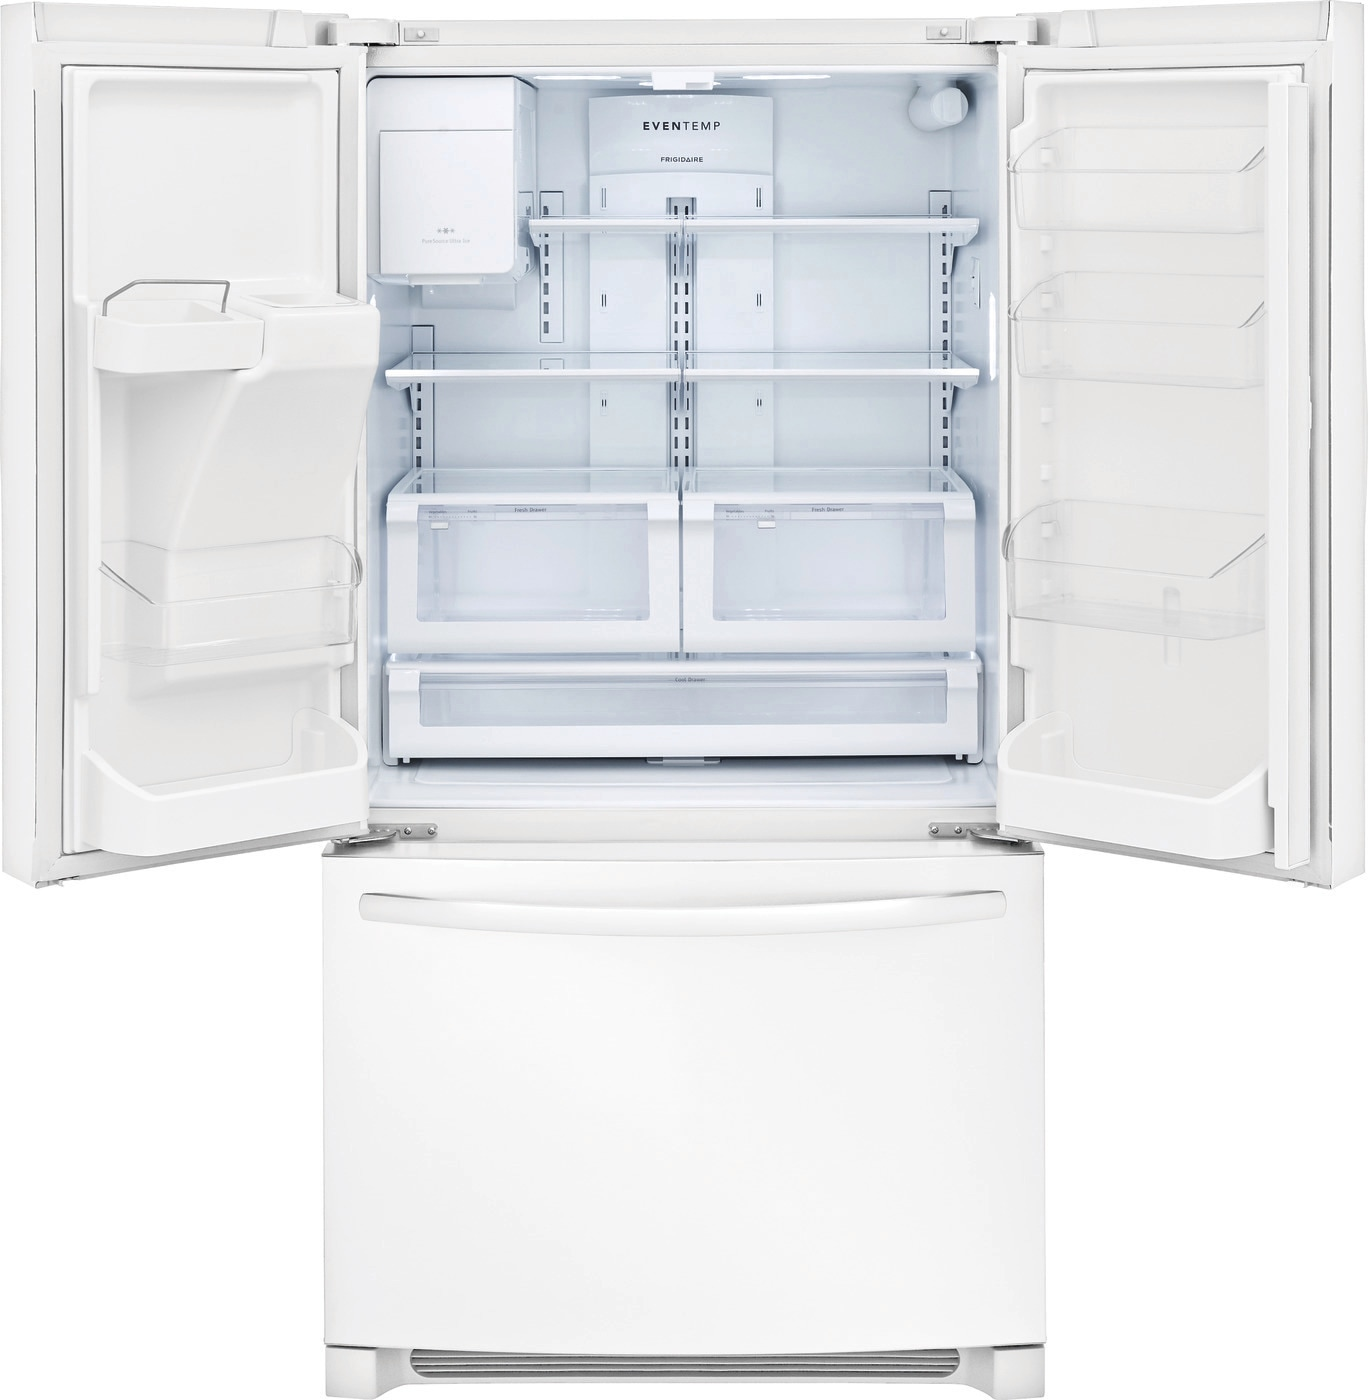 26.8 Cu. Ft. French Door Refrigerator Pearl White FFHB2750TP